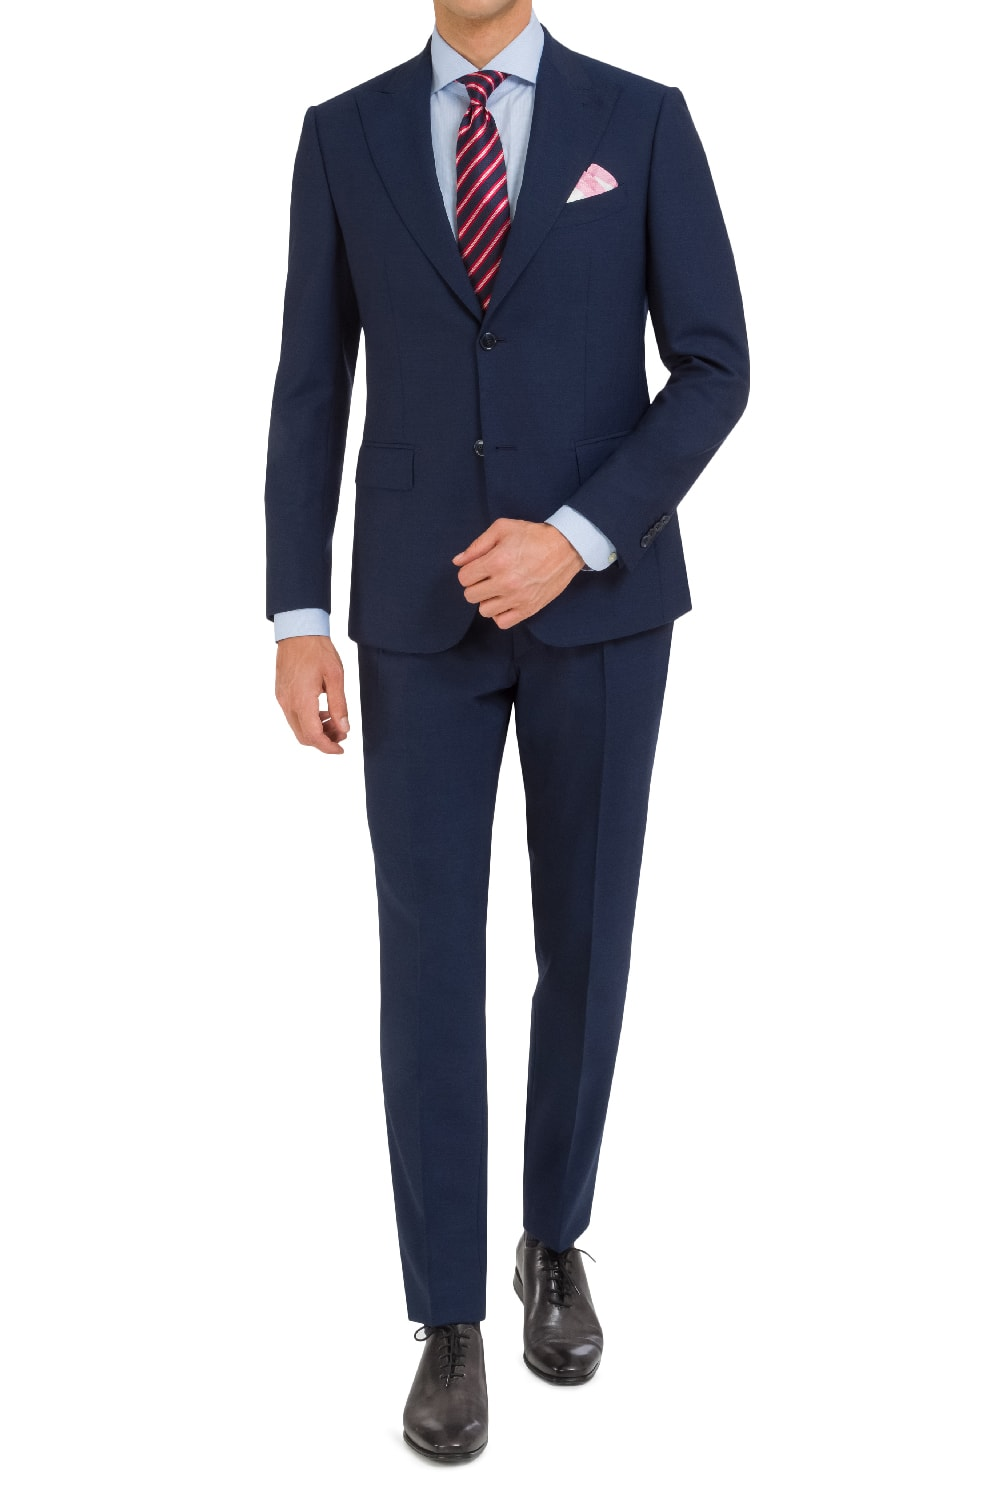 Refined navy suit